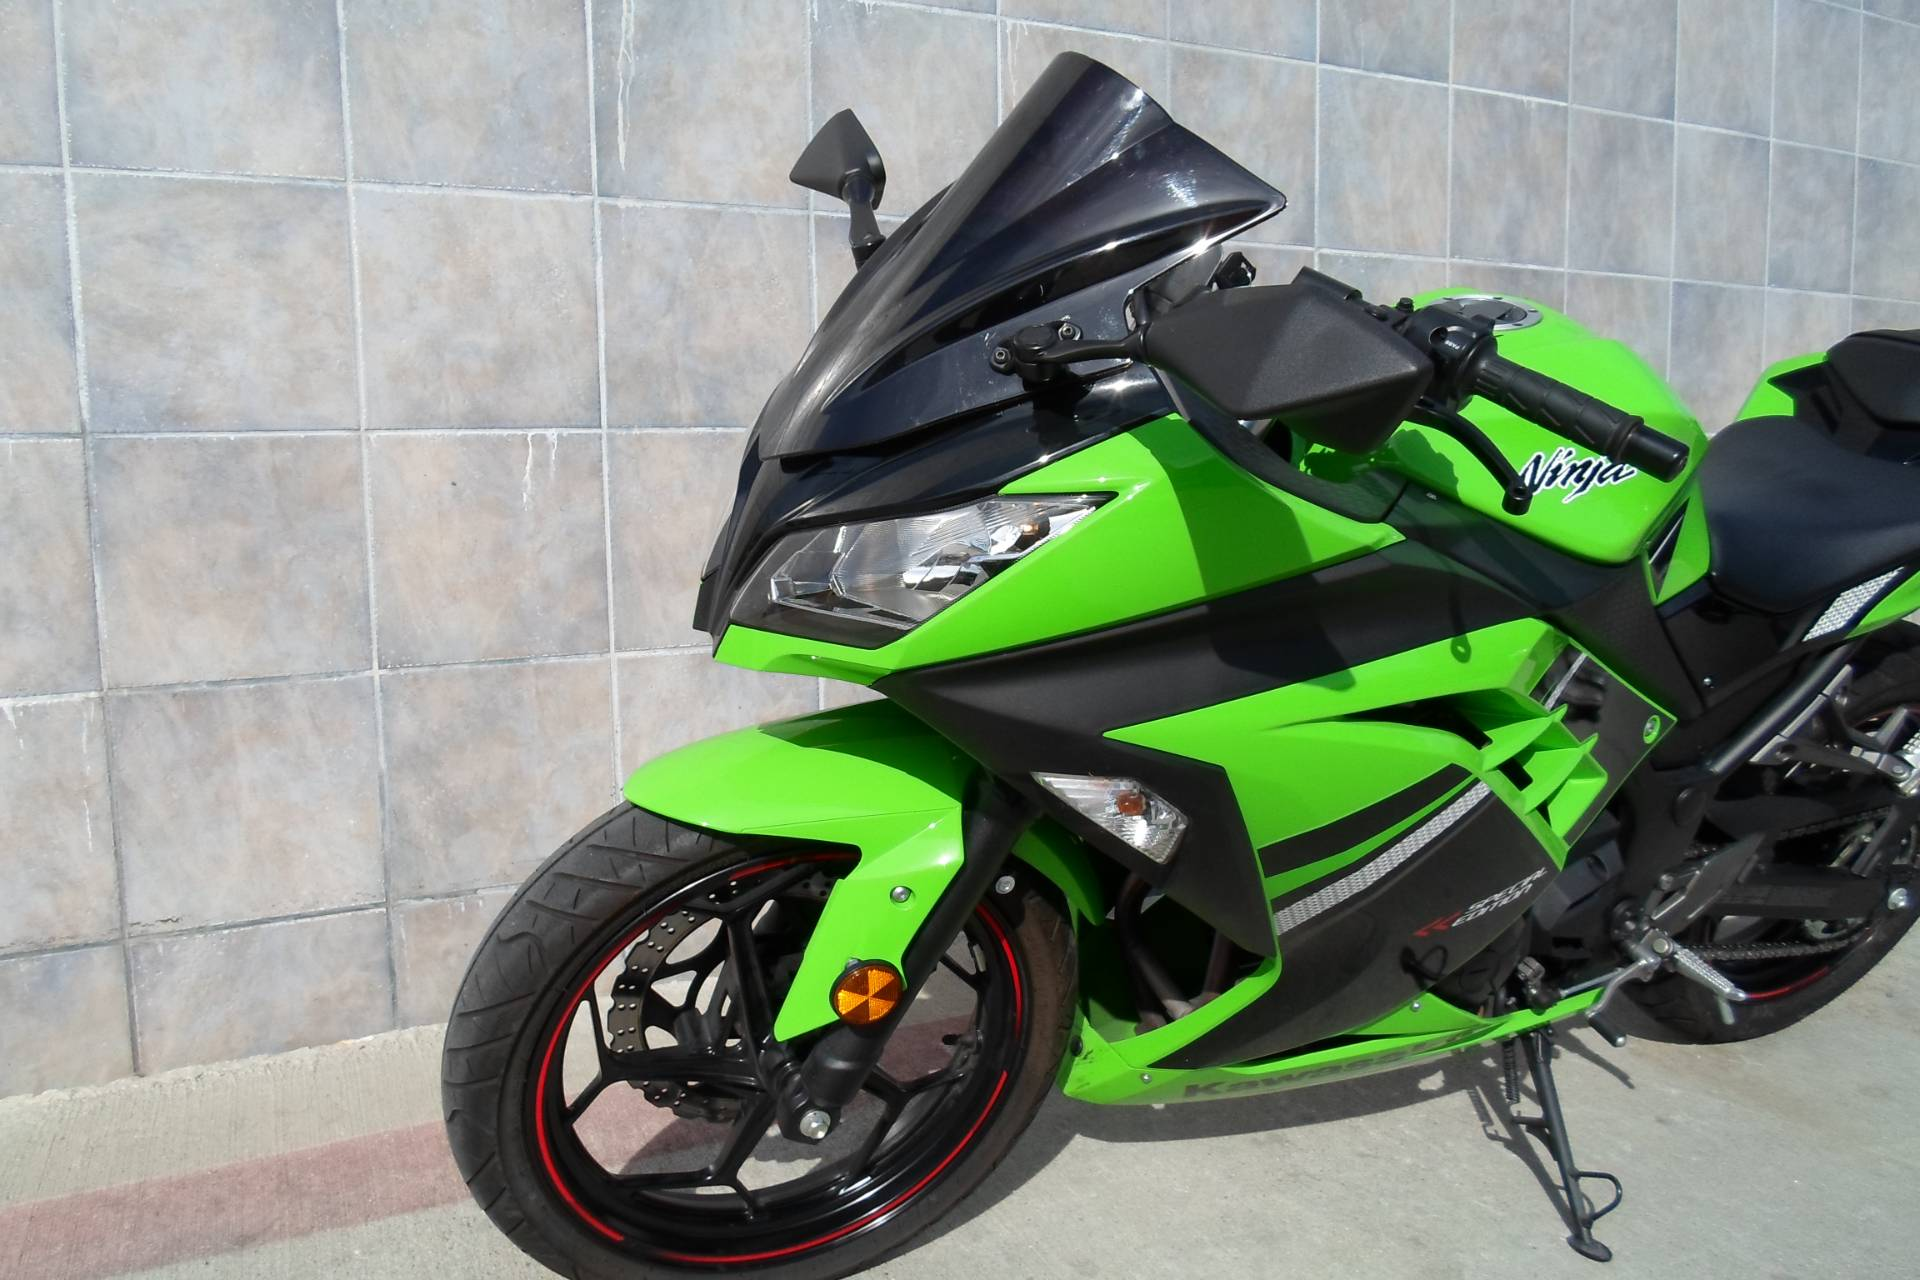 2014 Kawasaki Ninja® 300 SE in San Marcos, California - Photo 5